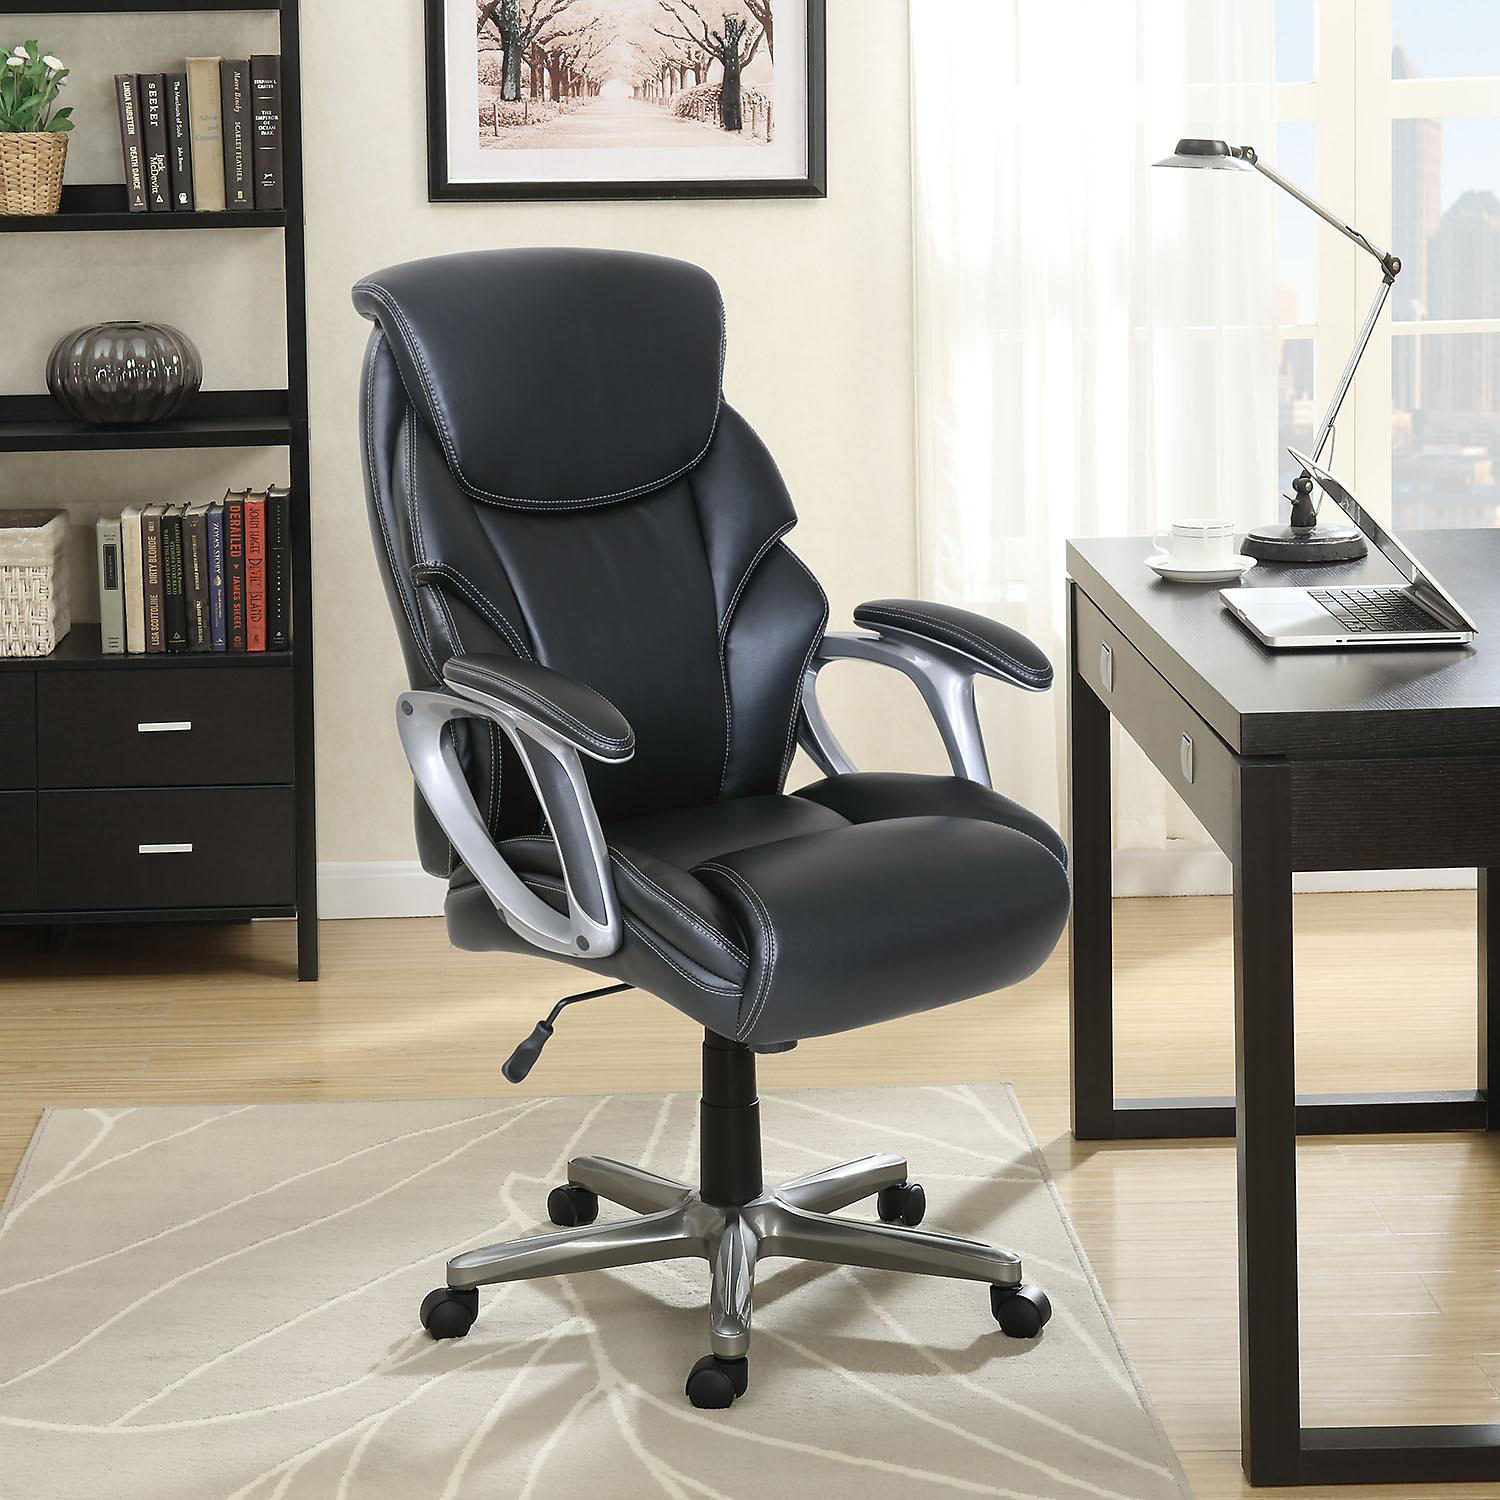 Serta Manager's Office Chair Supports up to 250 Lbs (Black)